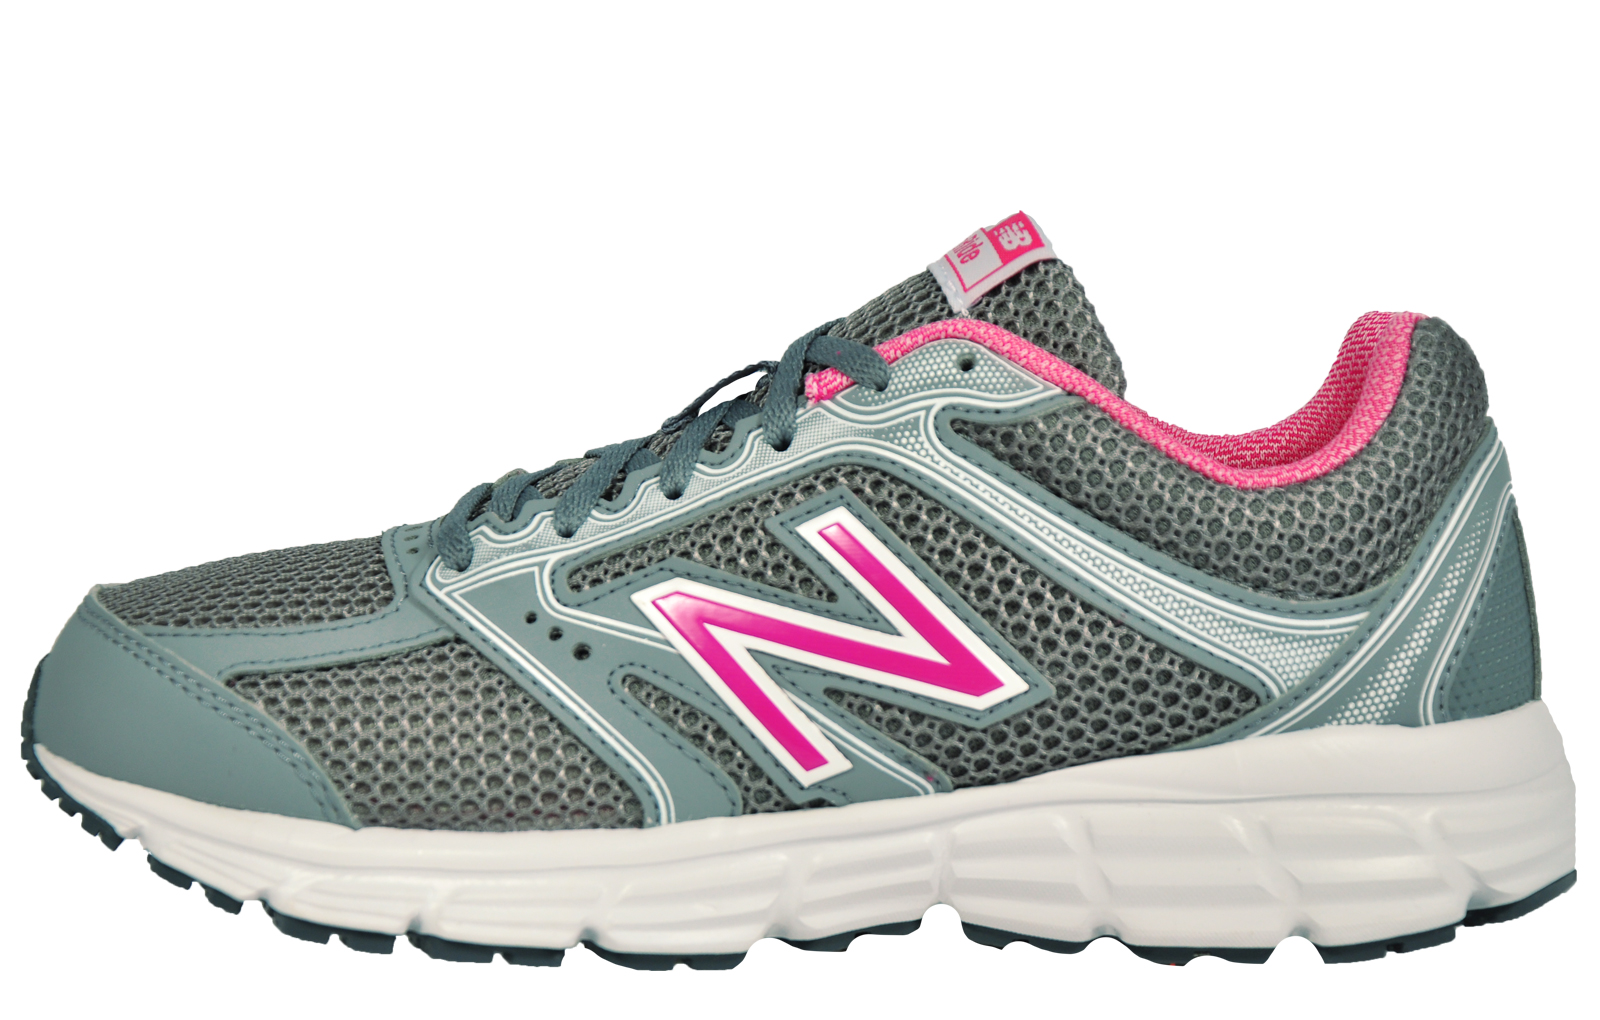 4bdfa59376967 Cheap New Balance Women's Trainers & Shoes | Express Trainers